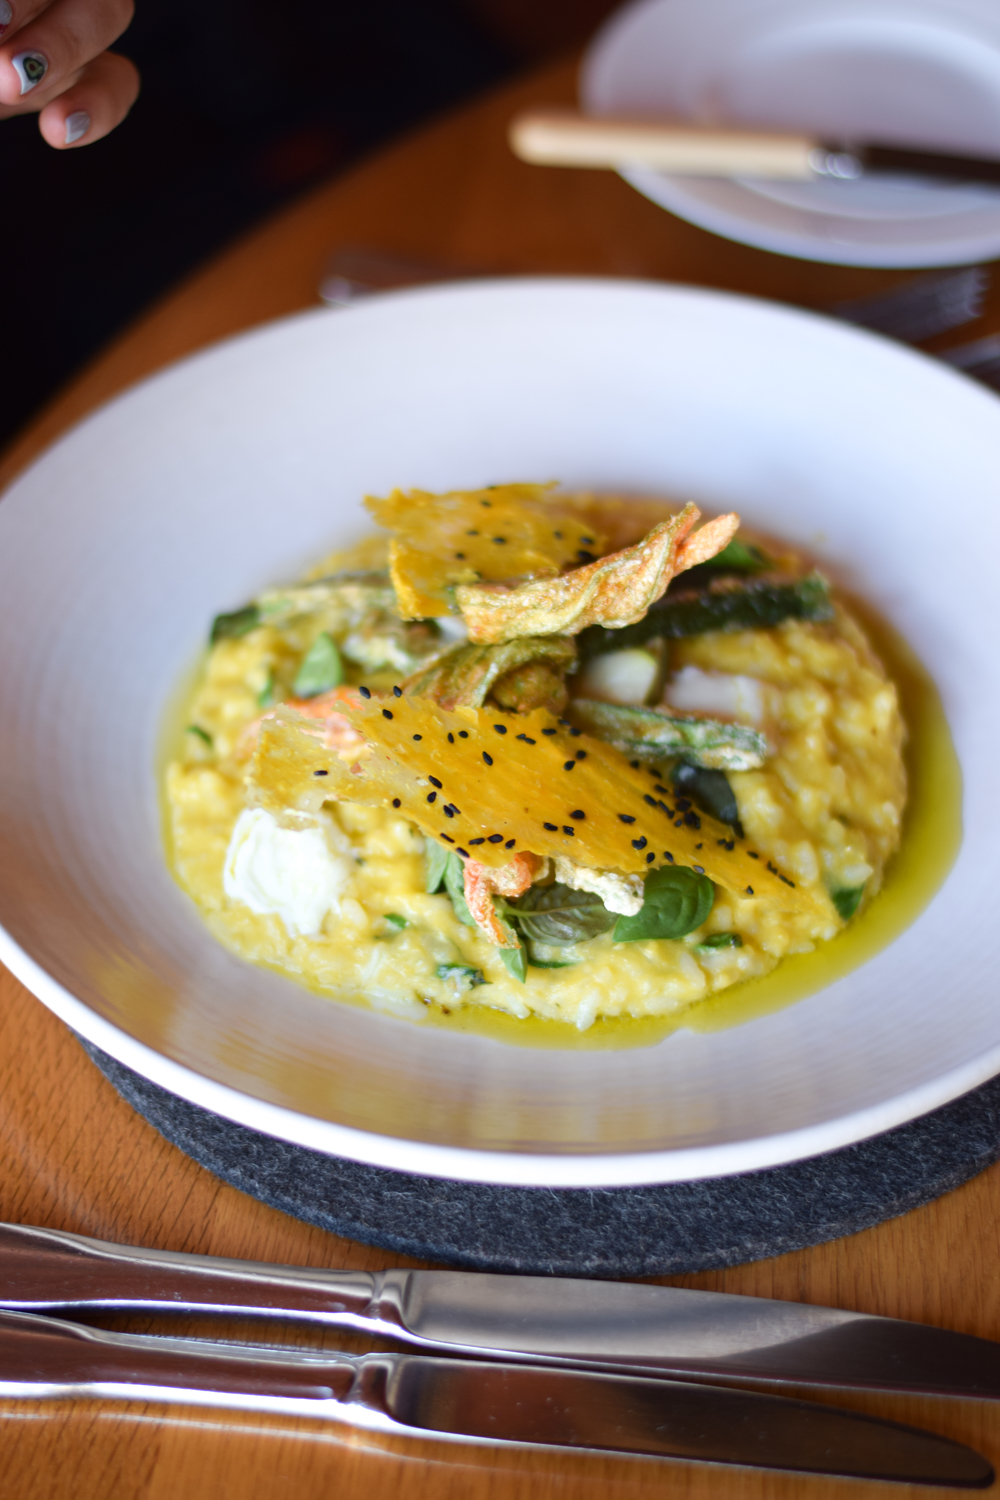 Zucchini flower risotto at Source Dining